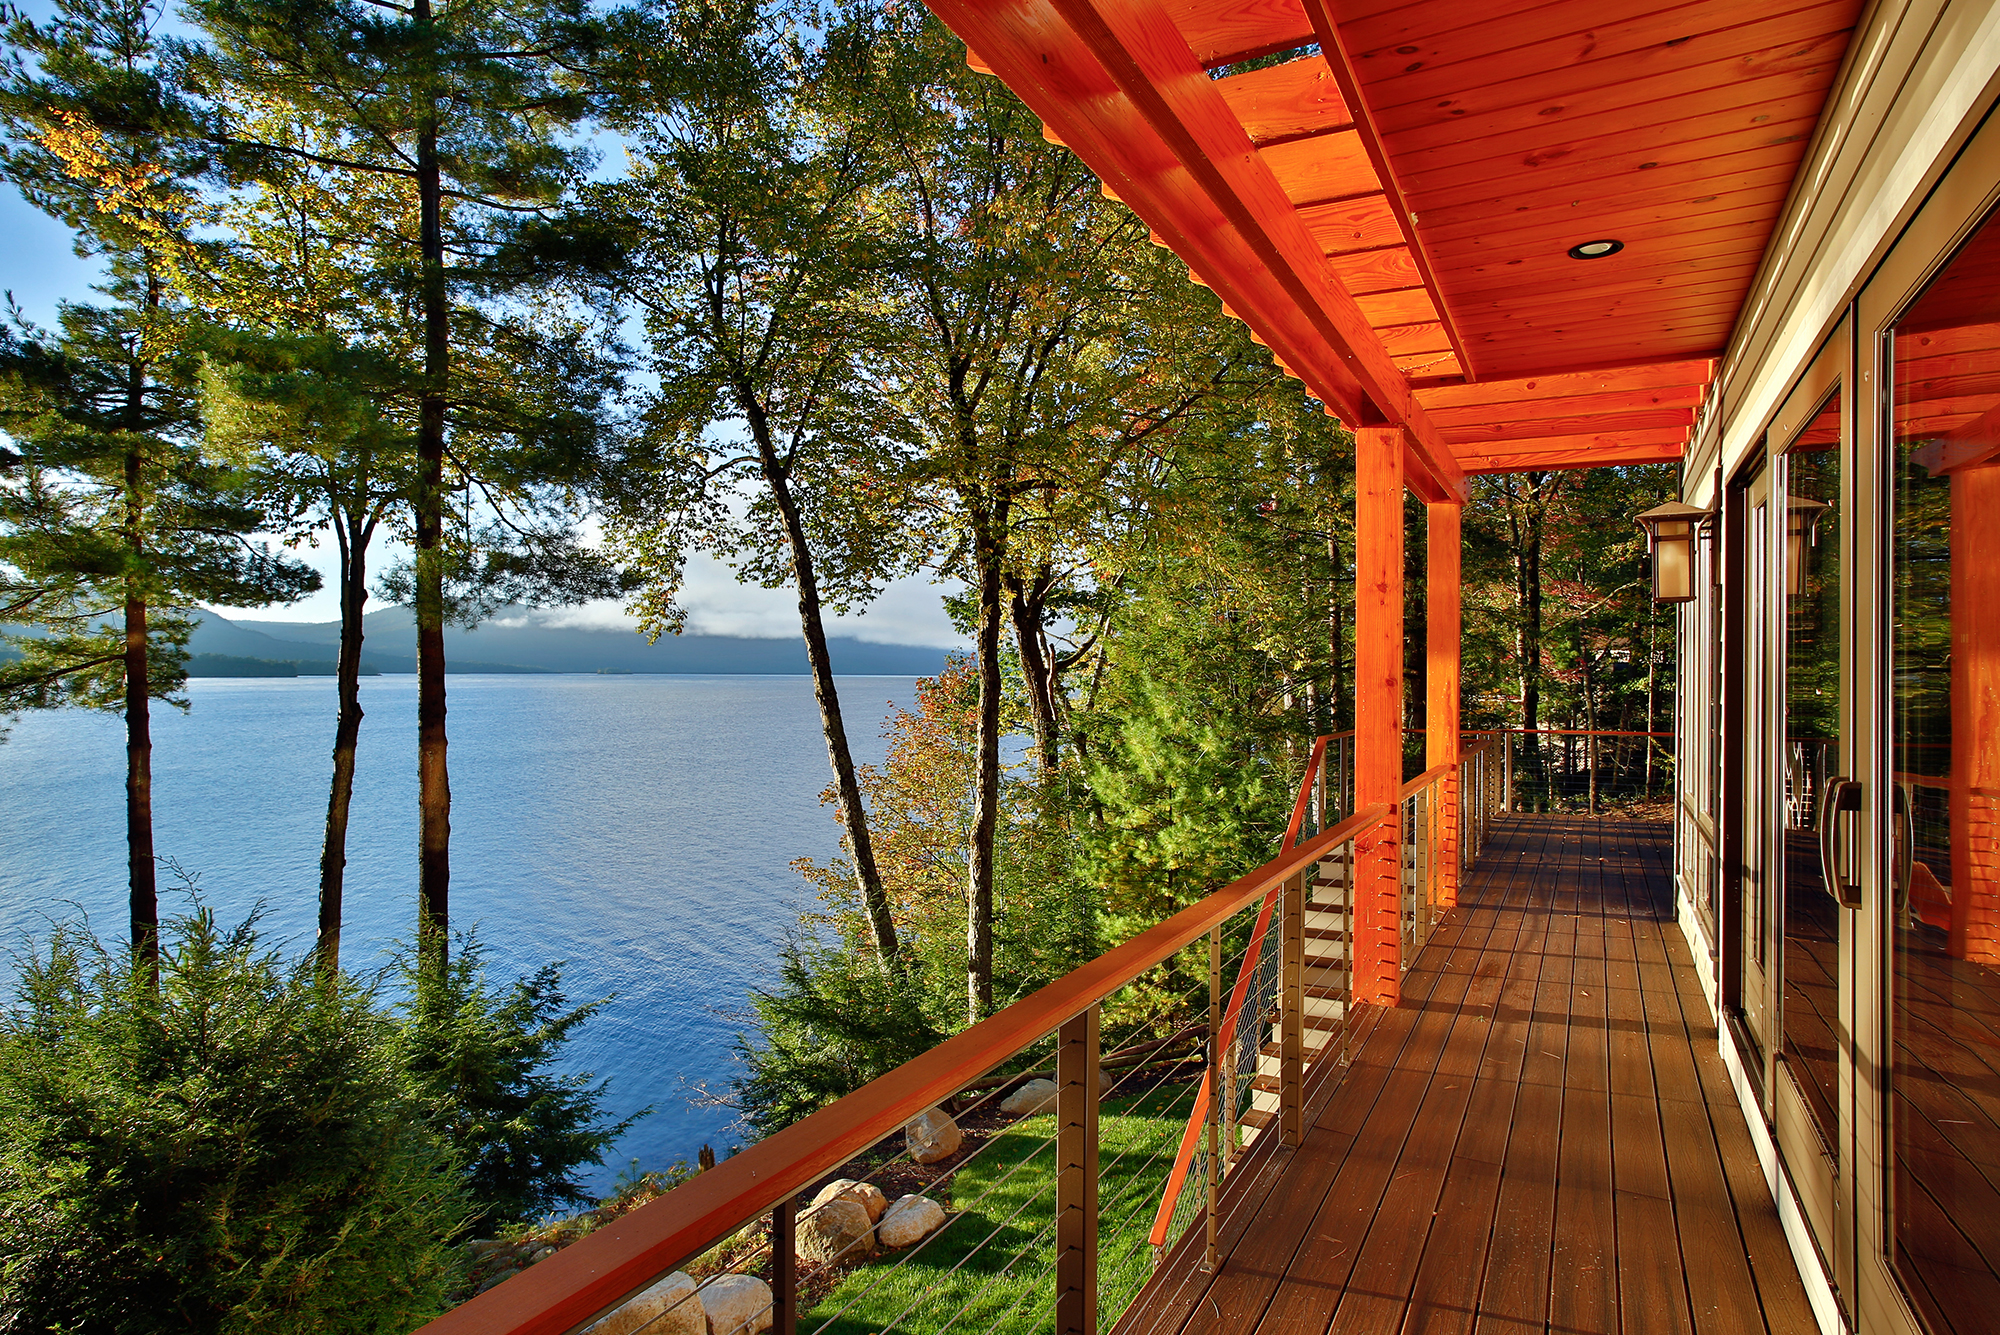 Adirondack Architectural Design by Balzer and Tuck